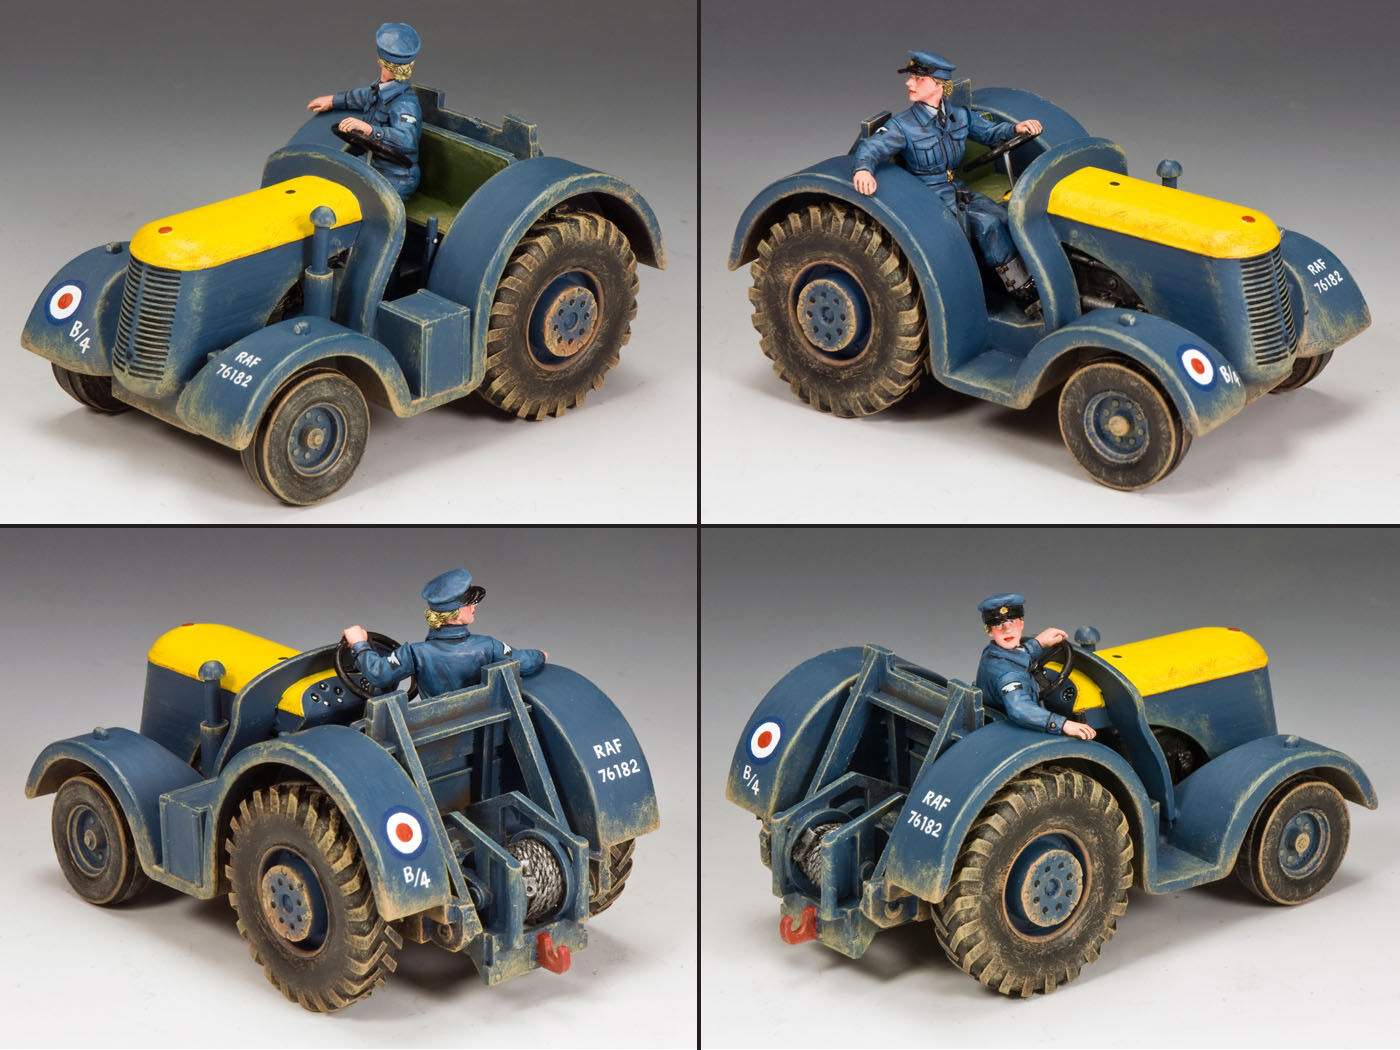 KING & COUNTRY ROYAL AIR FORCE RAF045 R.A.F. AIRFIELD TRACTOR MIB